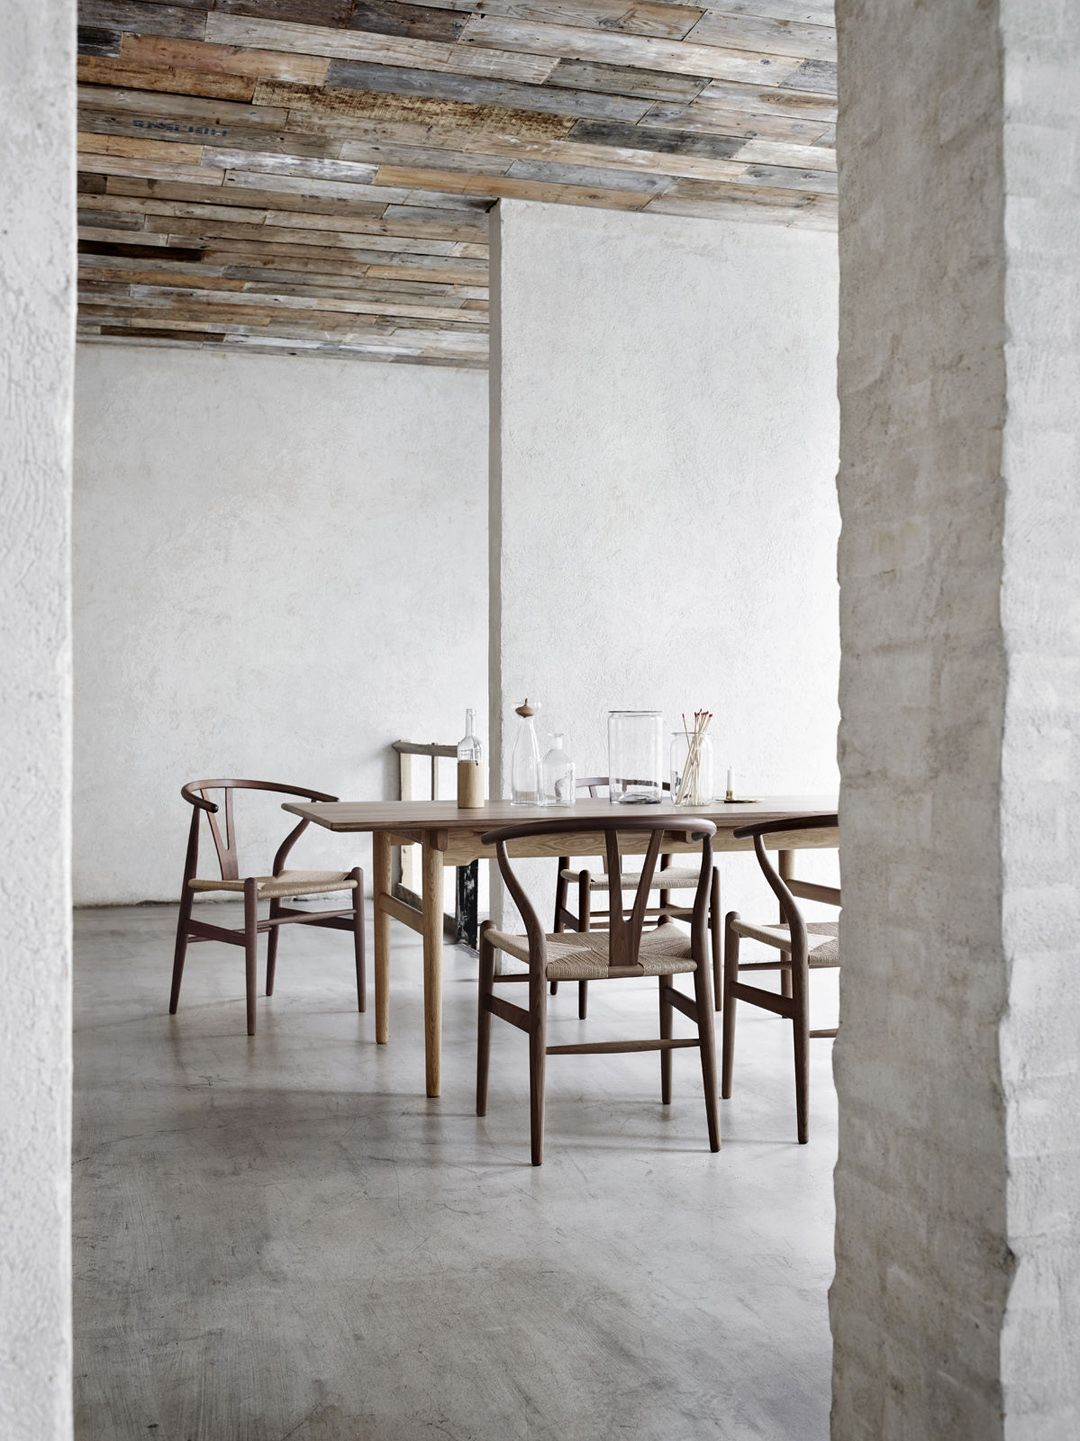 Suspended table by berstein architects - 9 Handsome Spaces That Will Make You Crave The Limited Elm Wood Wishbone Chair Bungalow5